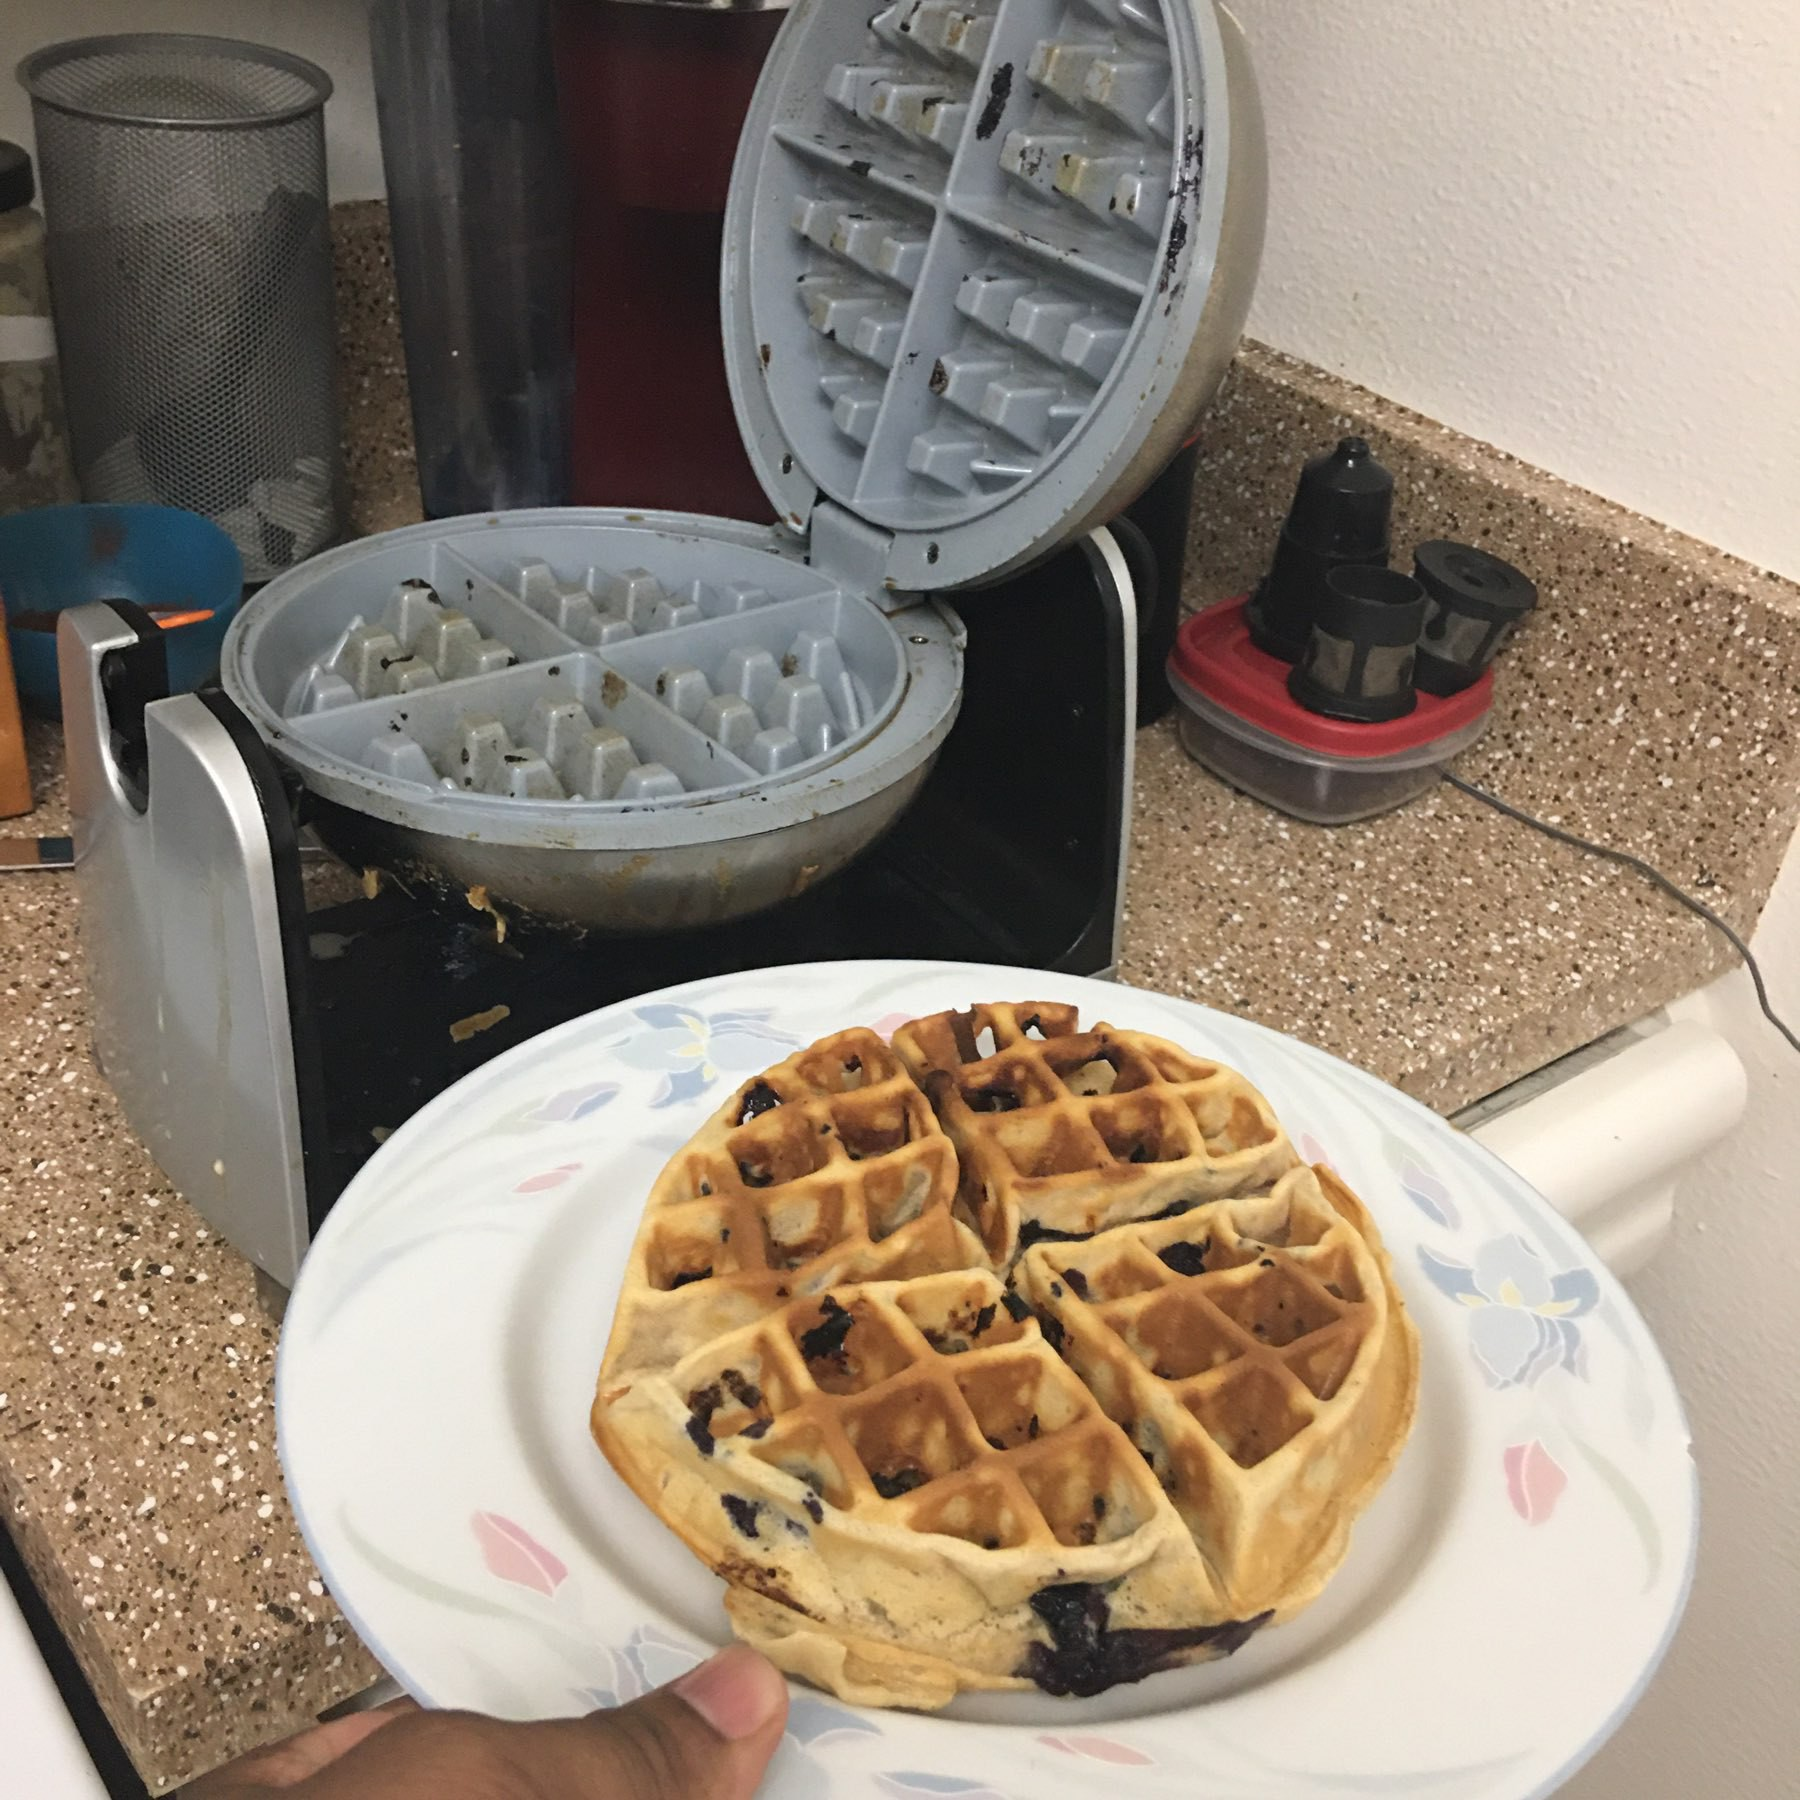 waffle fresh out of the maker.